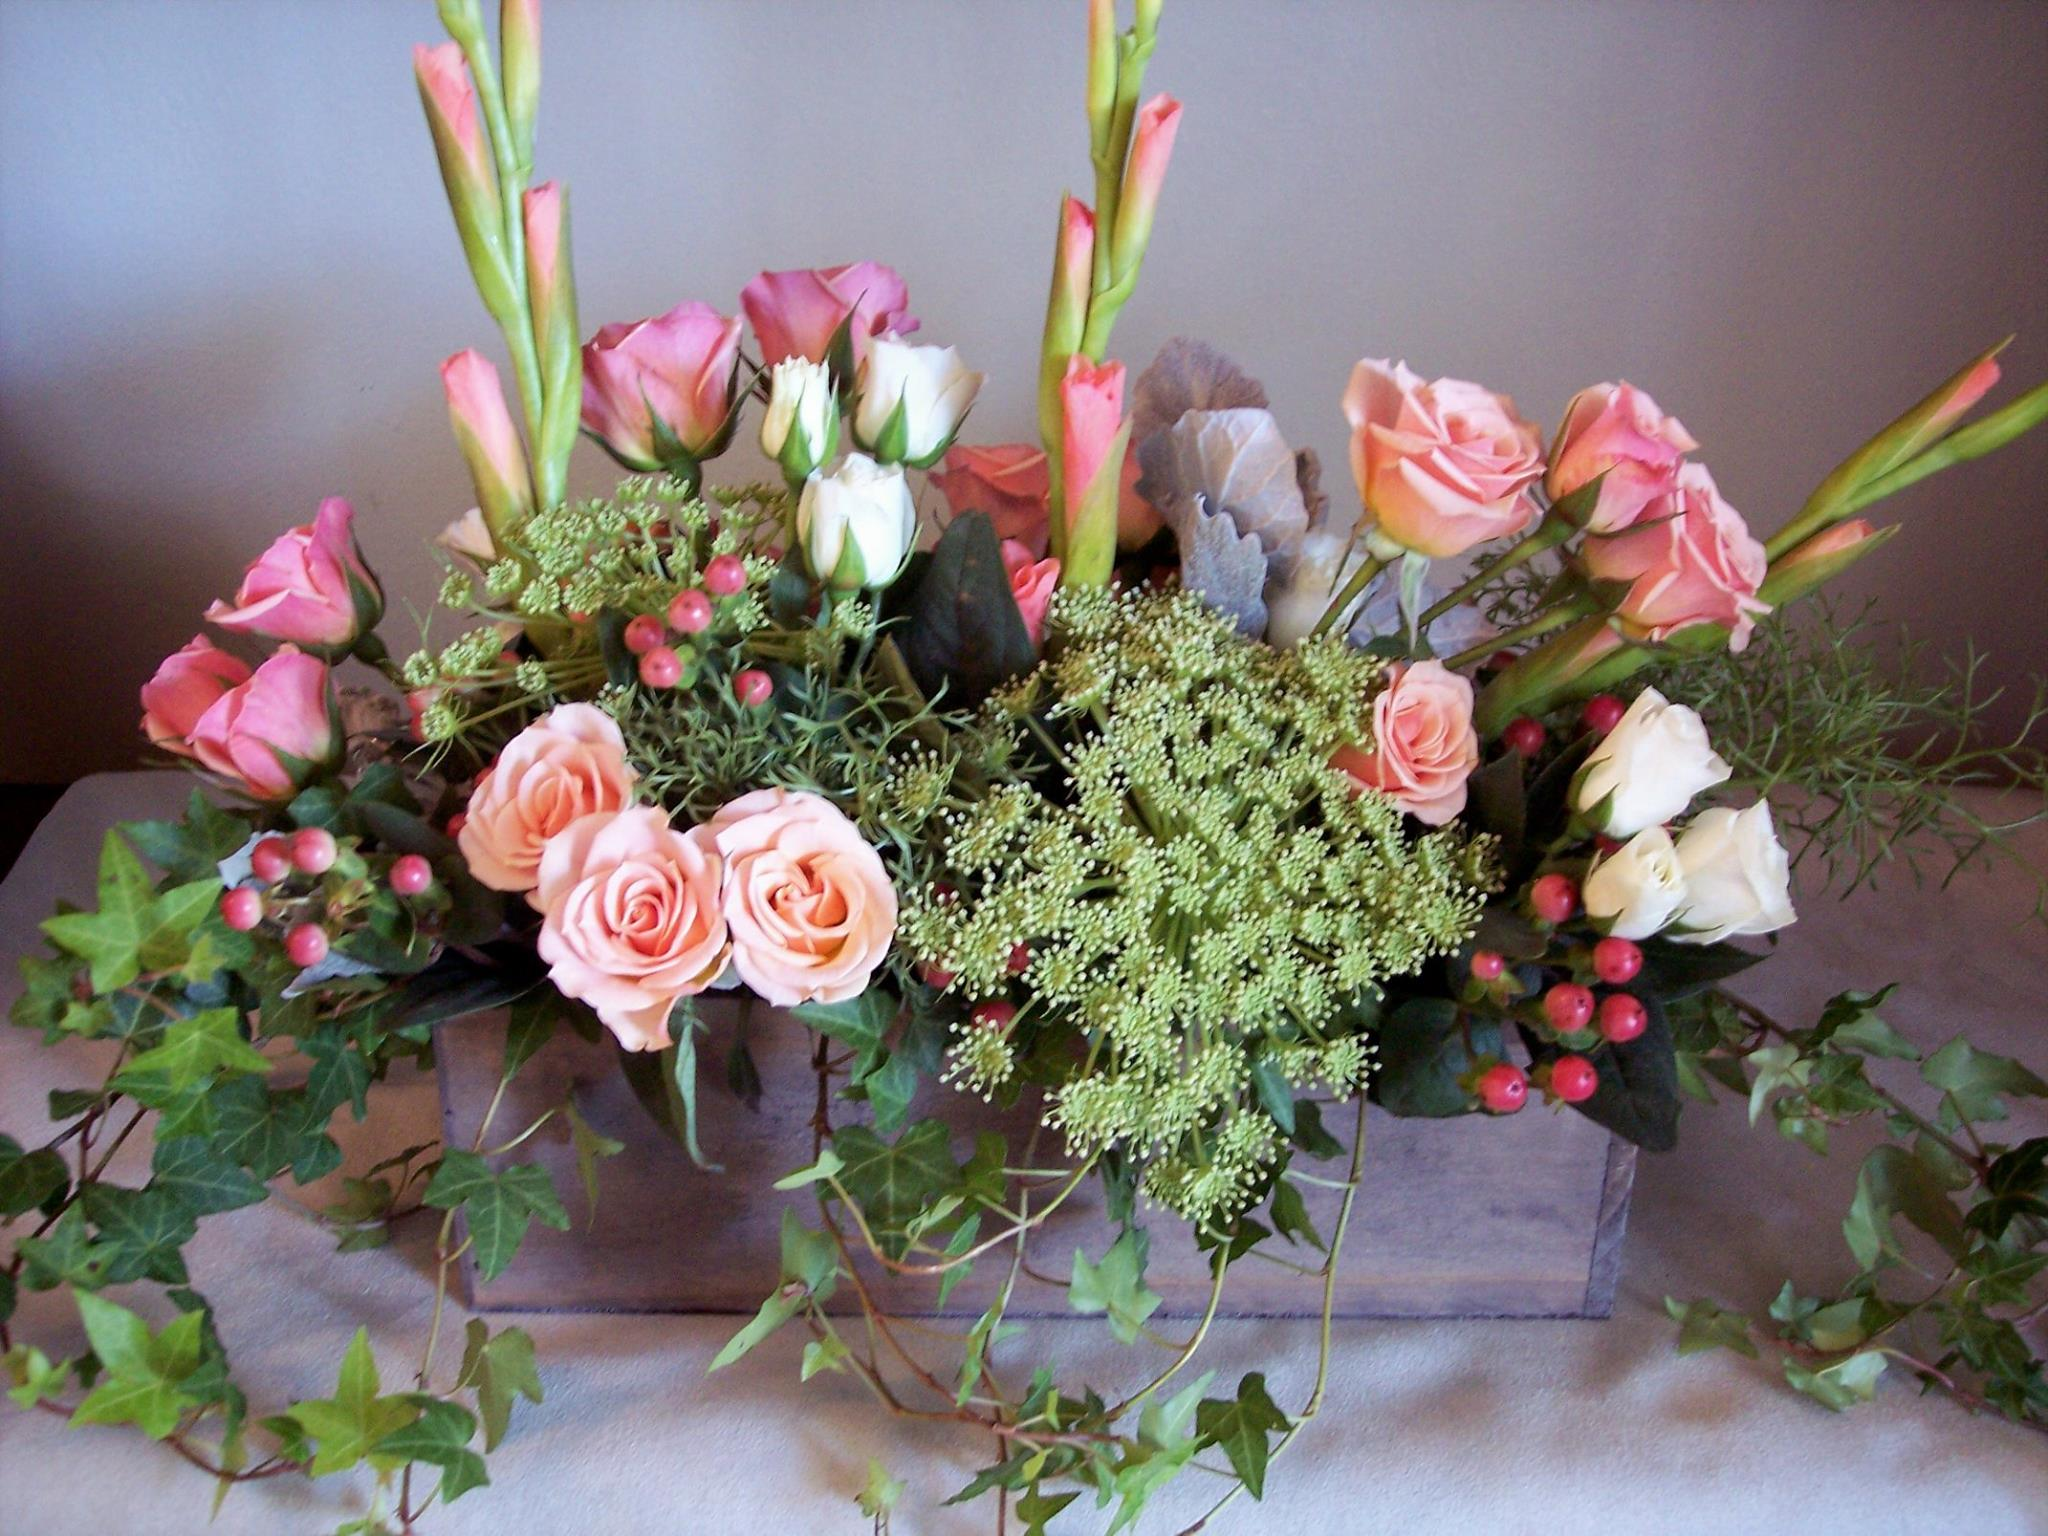 Superieur Tabletop Sympathy Arrangement For The Treehouse Florist In New Freedom, PA